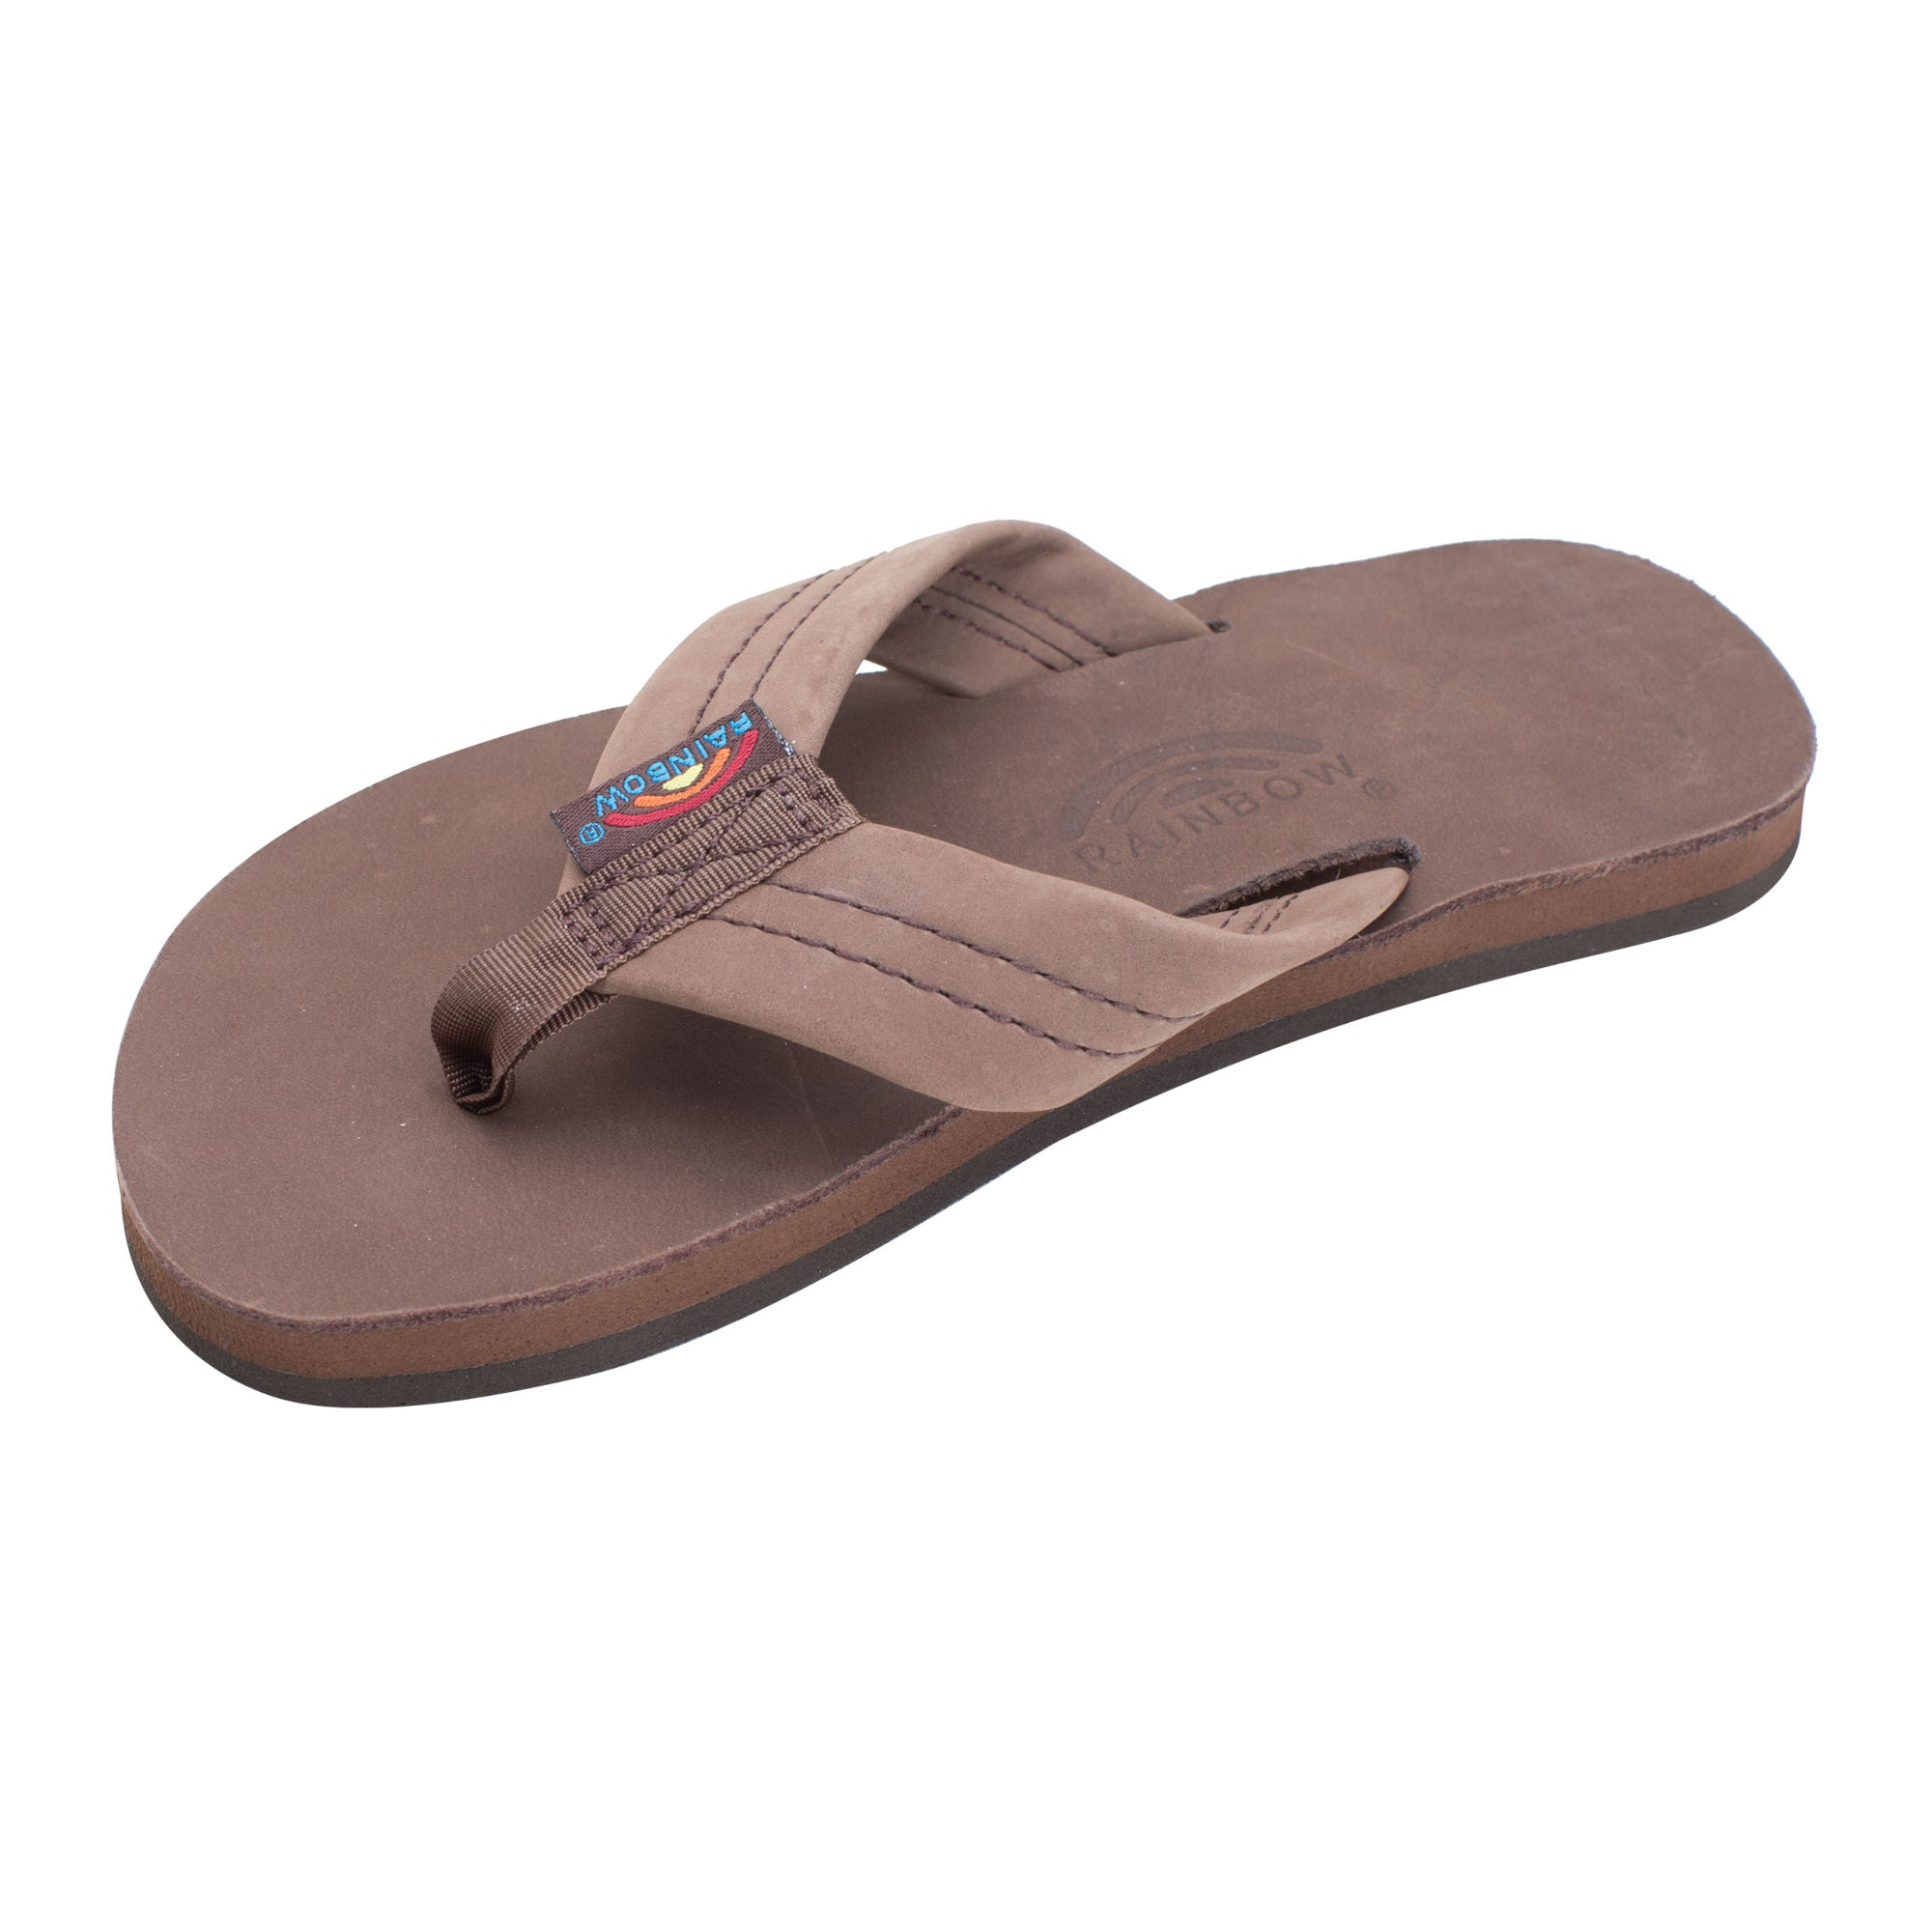 Rainbow Premier Leather Youth Boy's Sandals